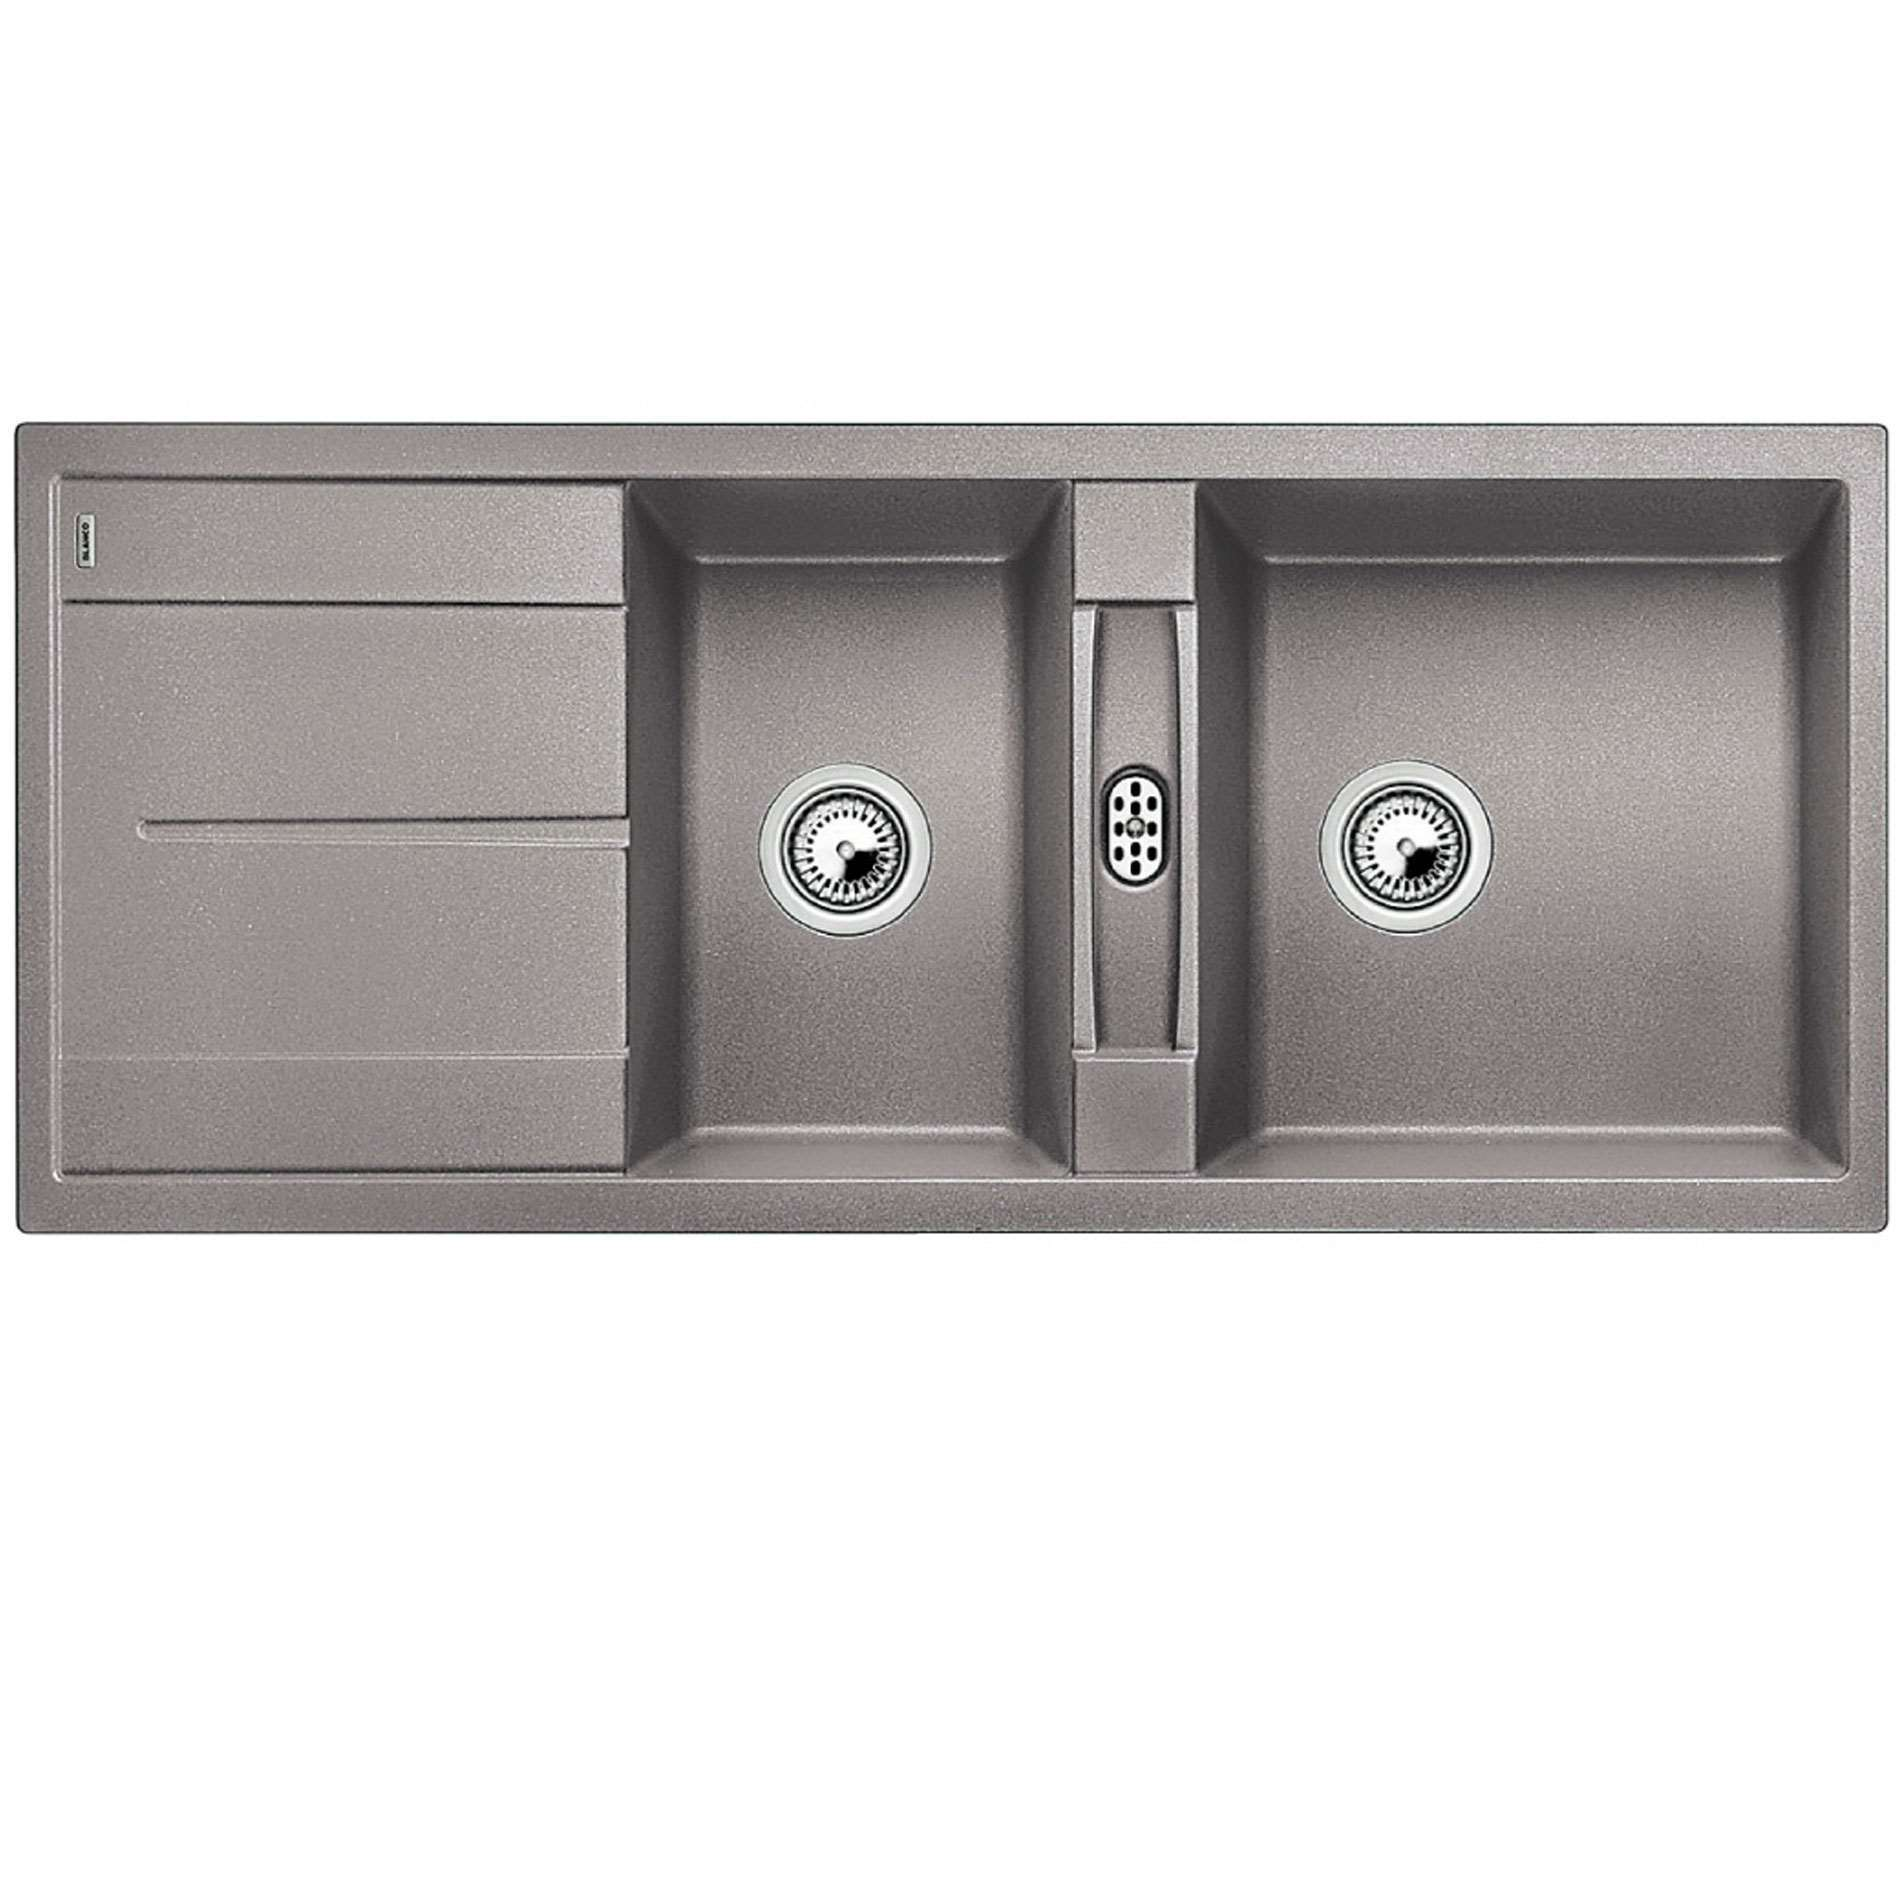 blanco metra 8 s alumetallic silgranit sink kitchen sinks taps. Black Bedroom Furniture Sets. Home Design Ideas